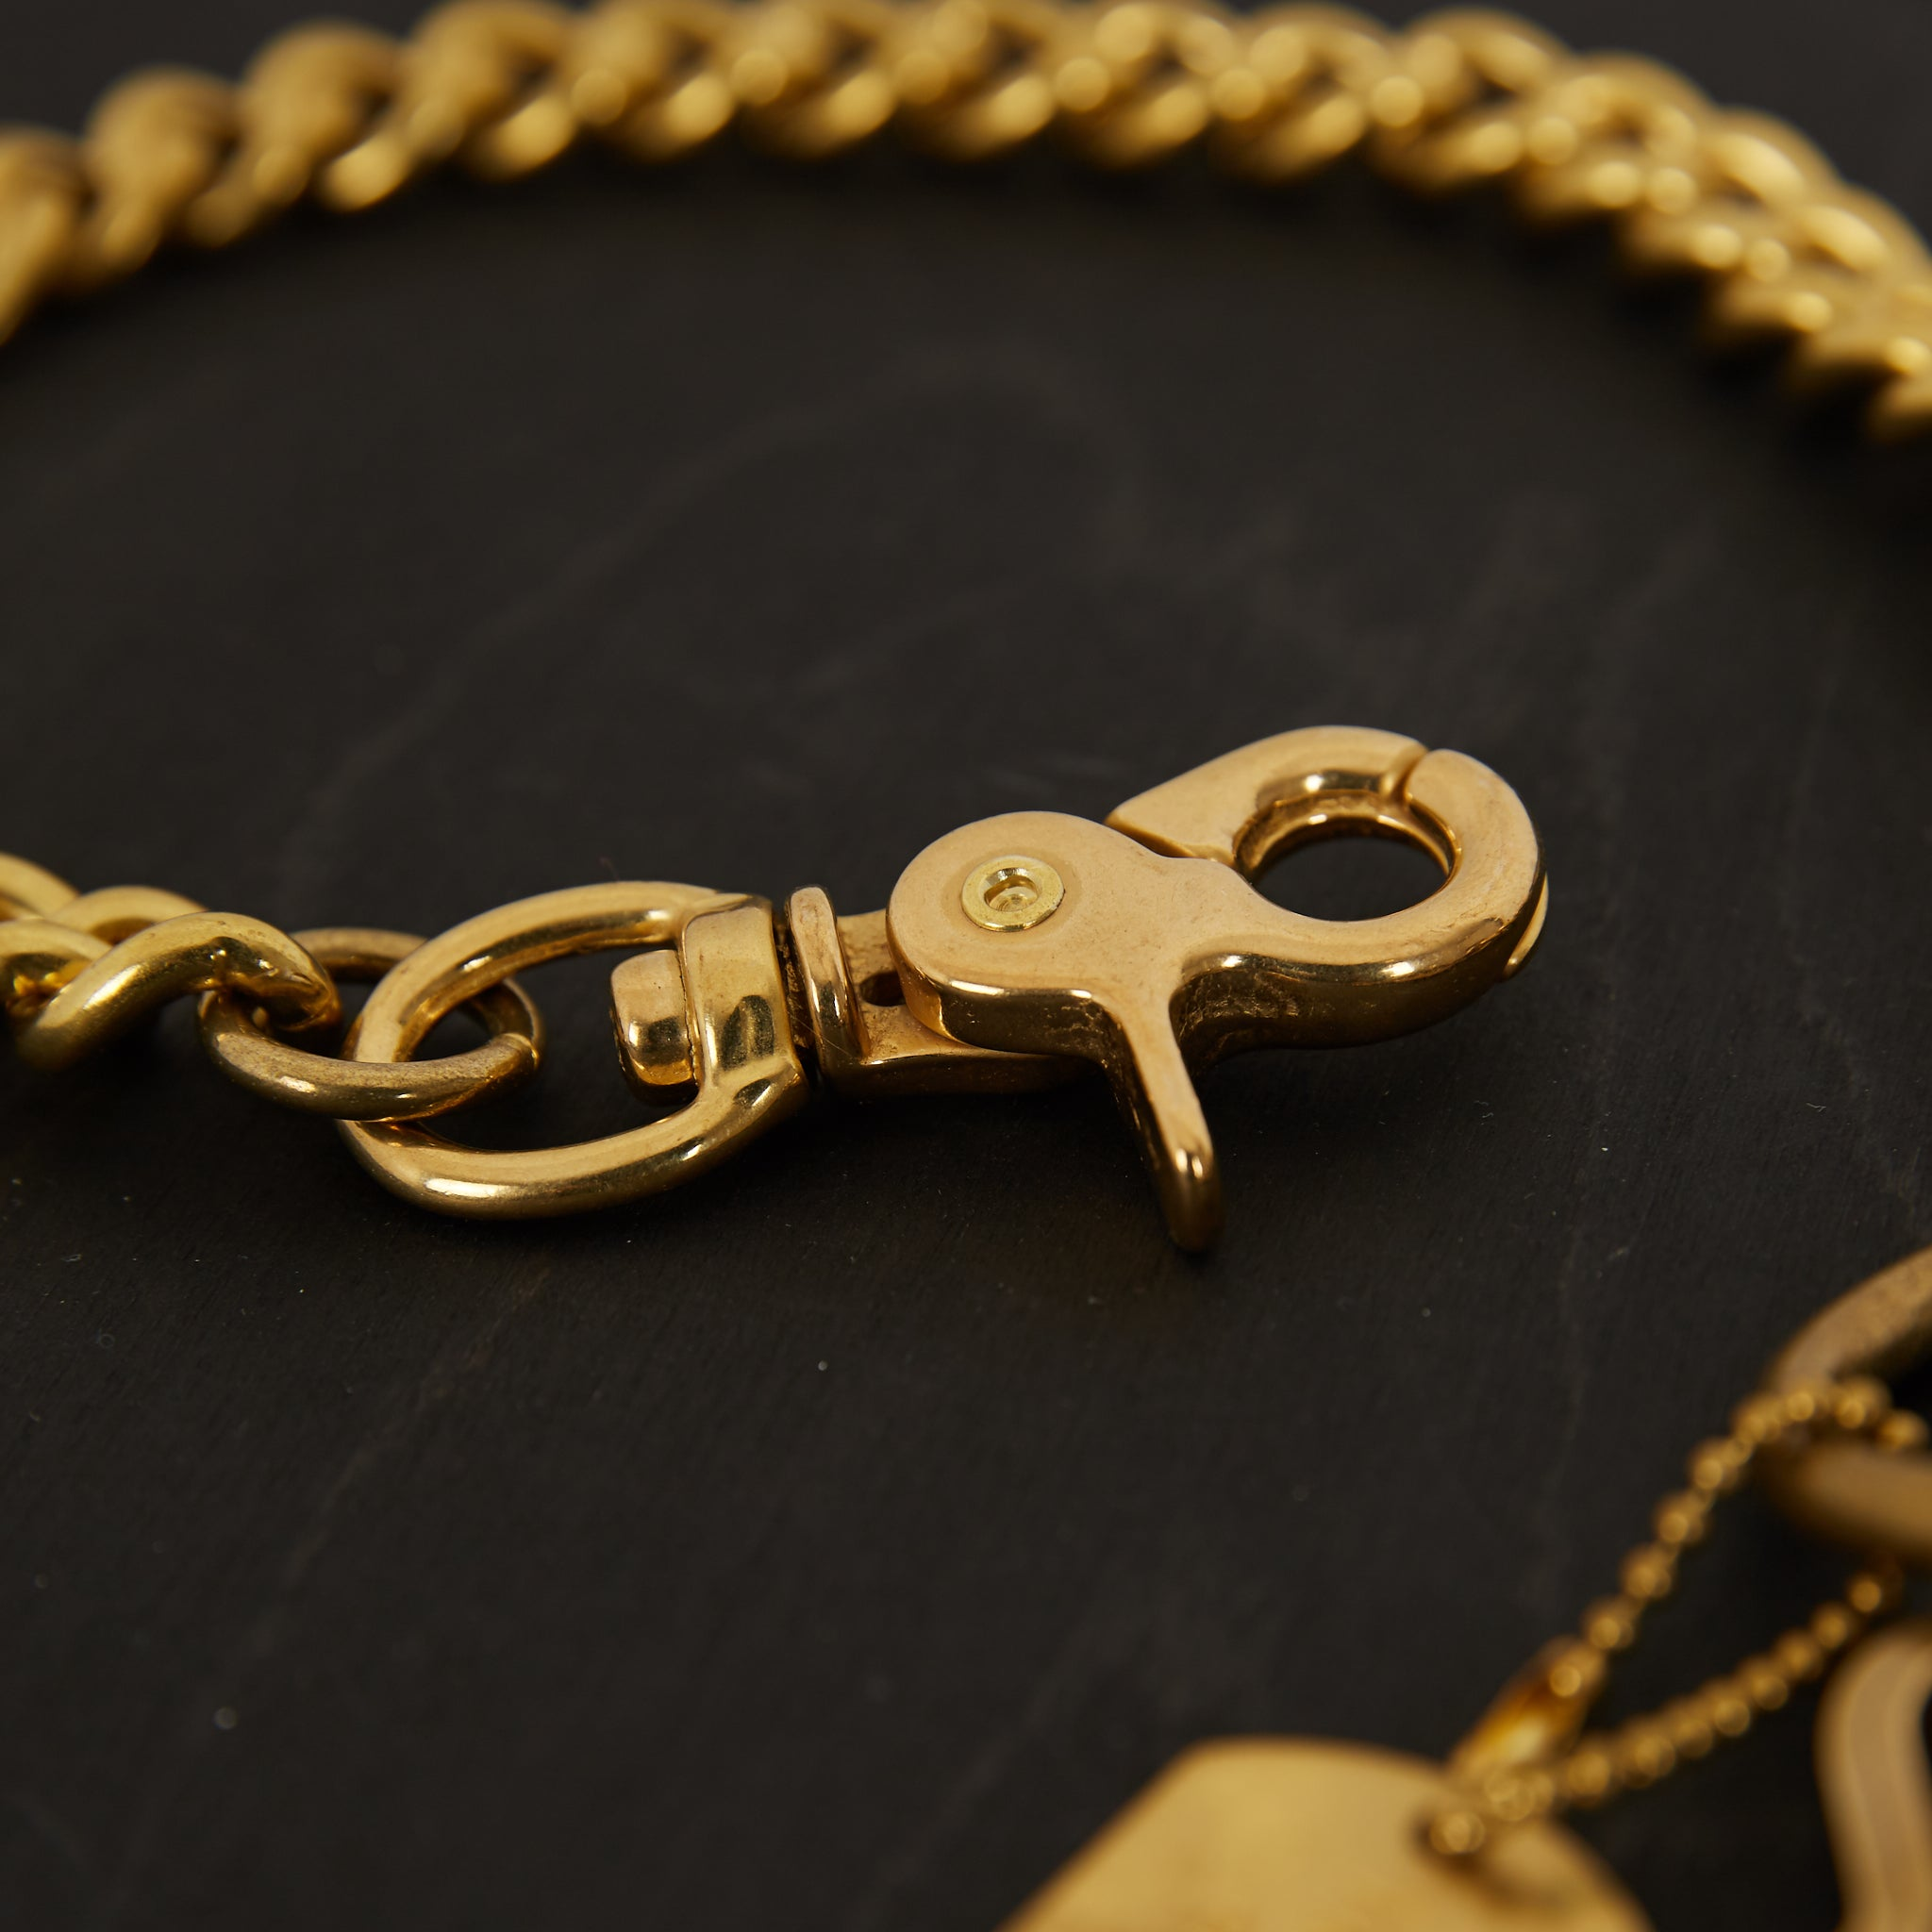 IH-Brass-W6 - Wallet Chain with Hook and Rings Brass